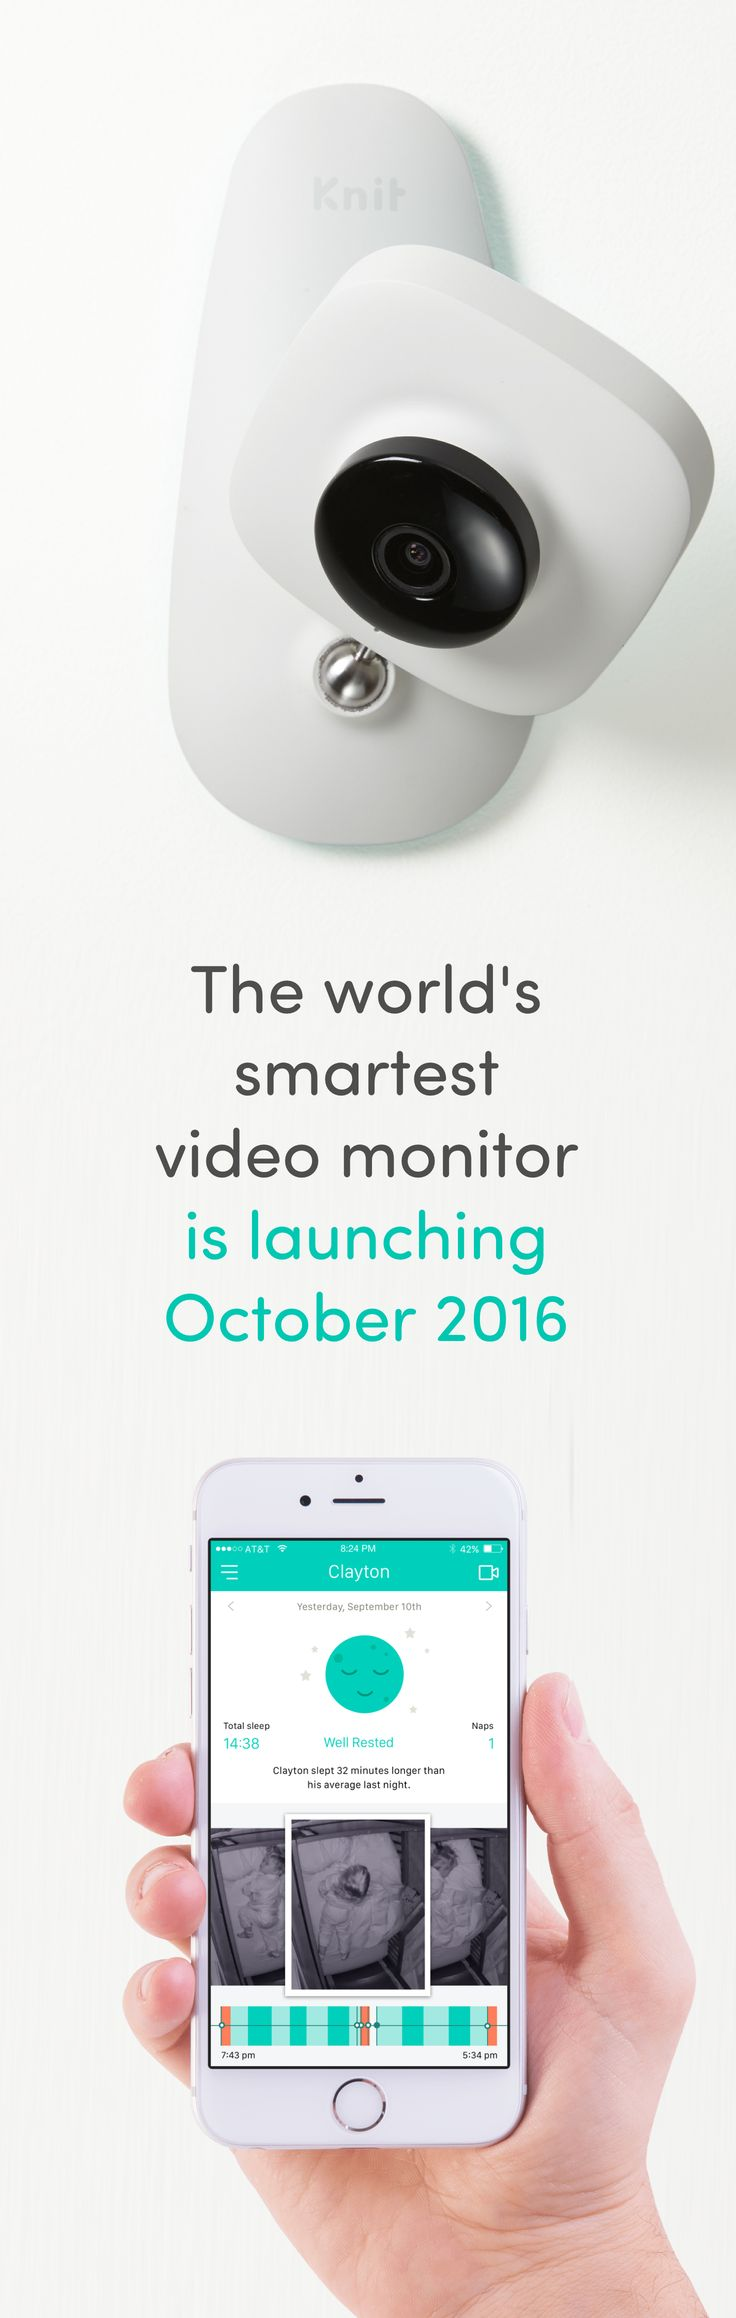 Launching next week. Watch the video, and sign up for the best discount on Kickstarter. Knit is the only baby monitor to track sleep AND breathing, all without wearables.